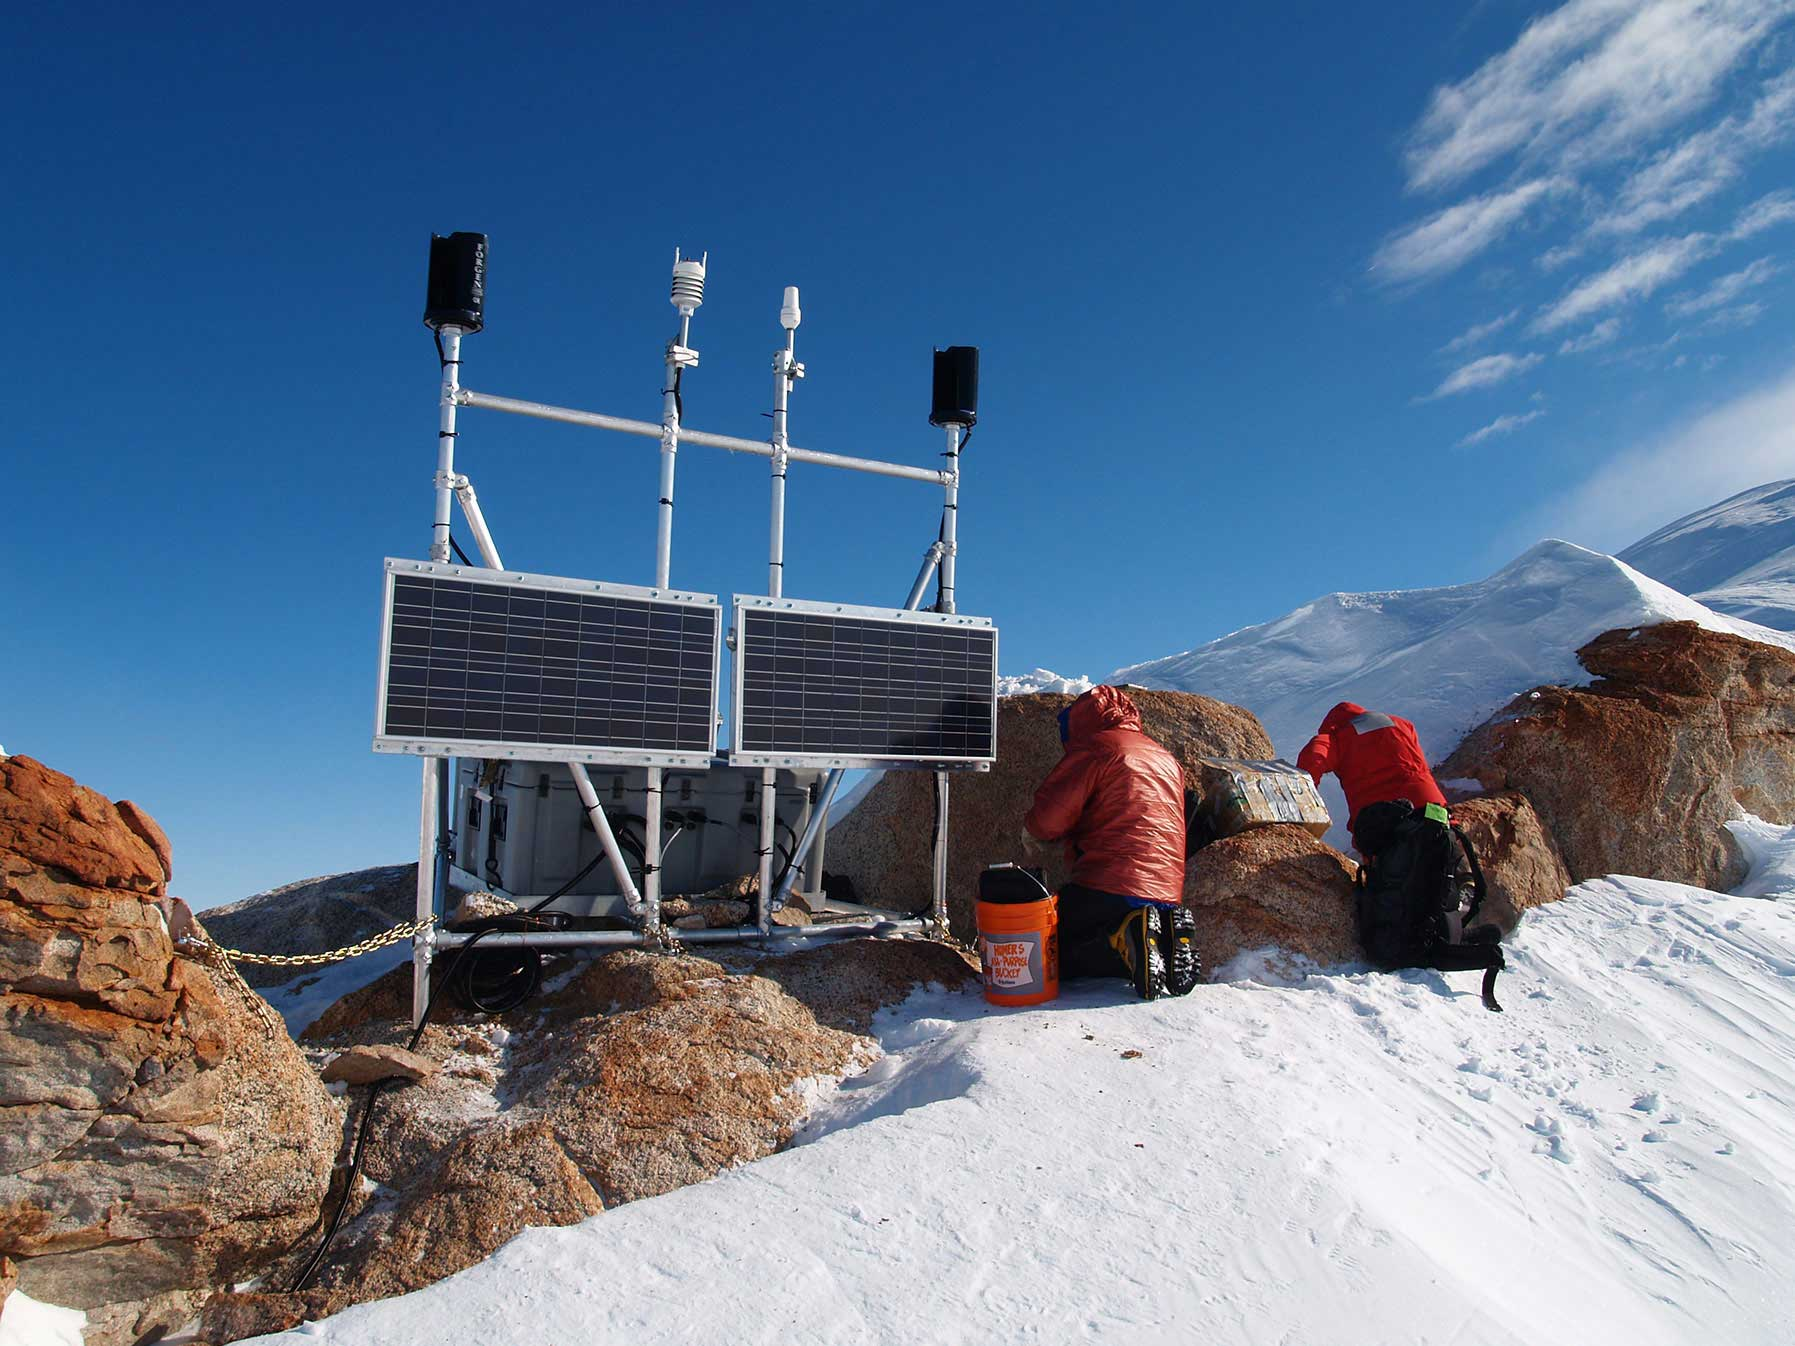 Genasun controllers attached to solar panels in snowy Arctic, suitable for harsh weather conditions with C1D2 classification